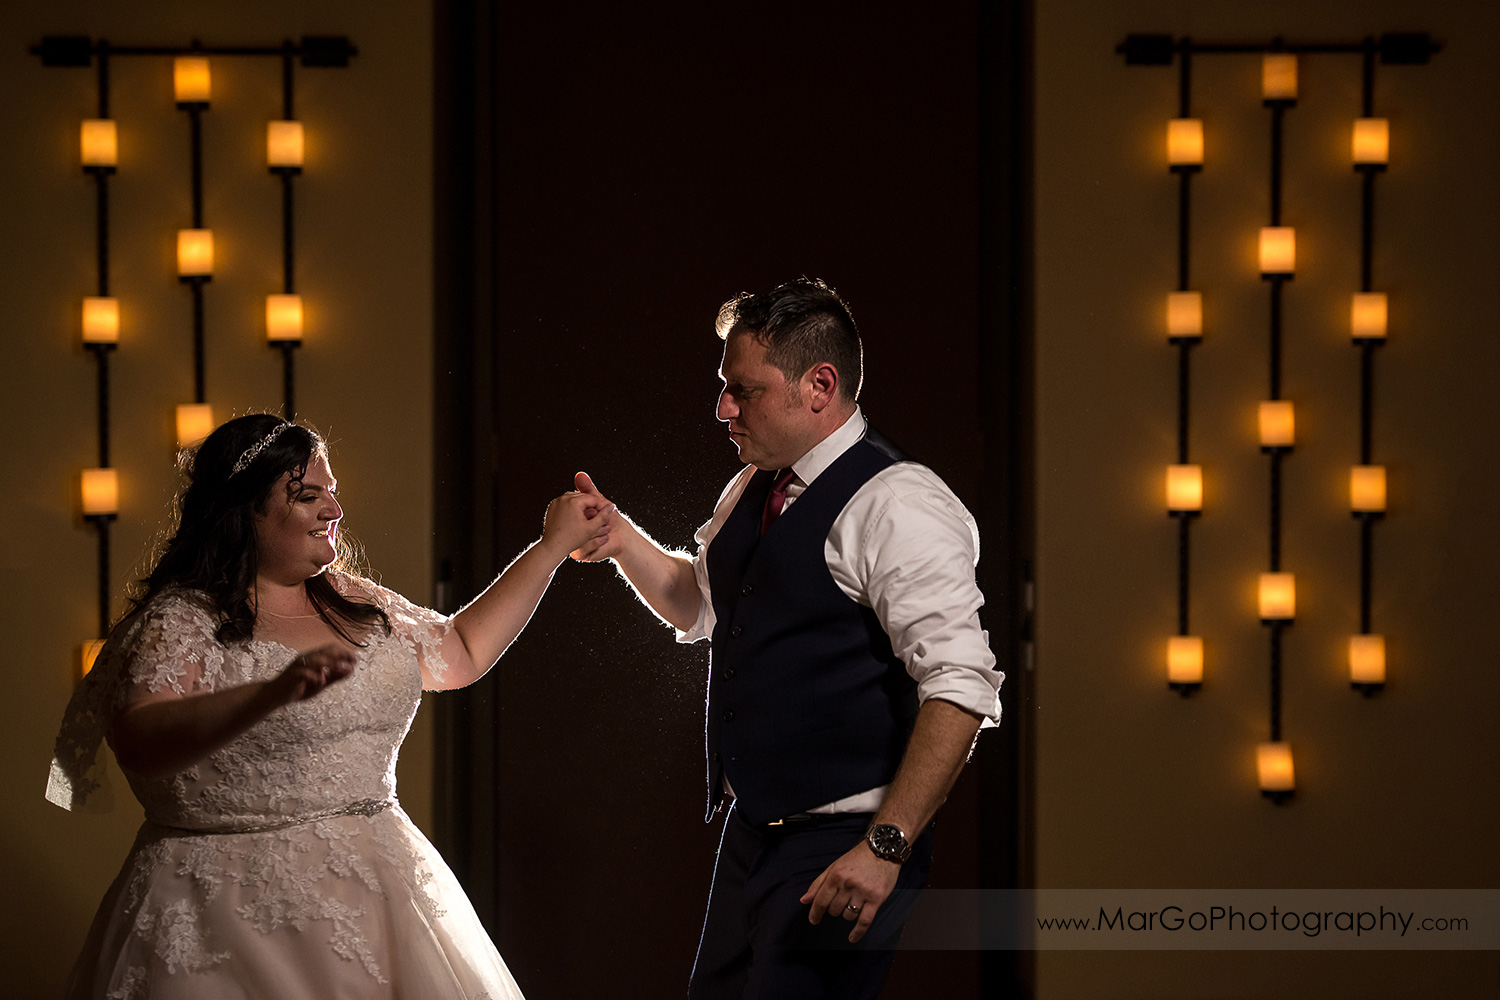 jewish bride and groom dancing during wedding reception at Livermore Garre Vineyard and Winery